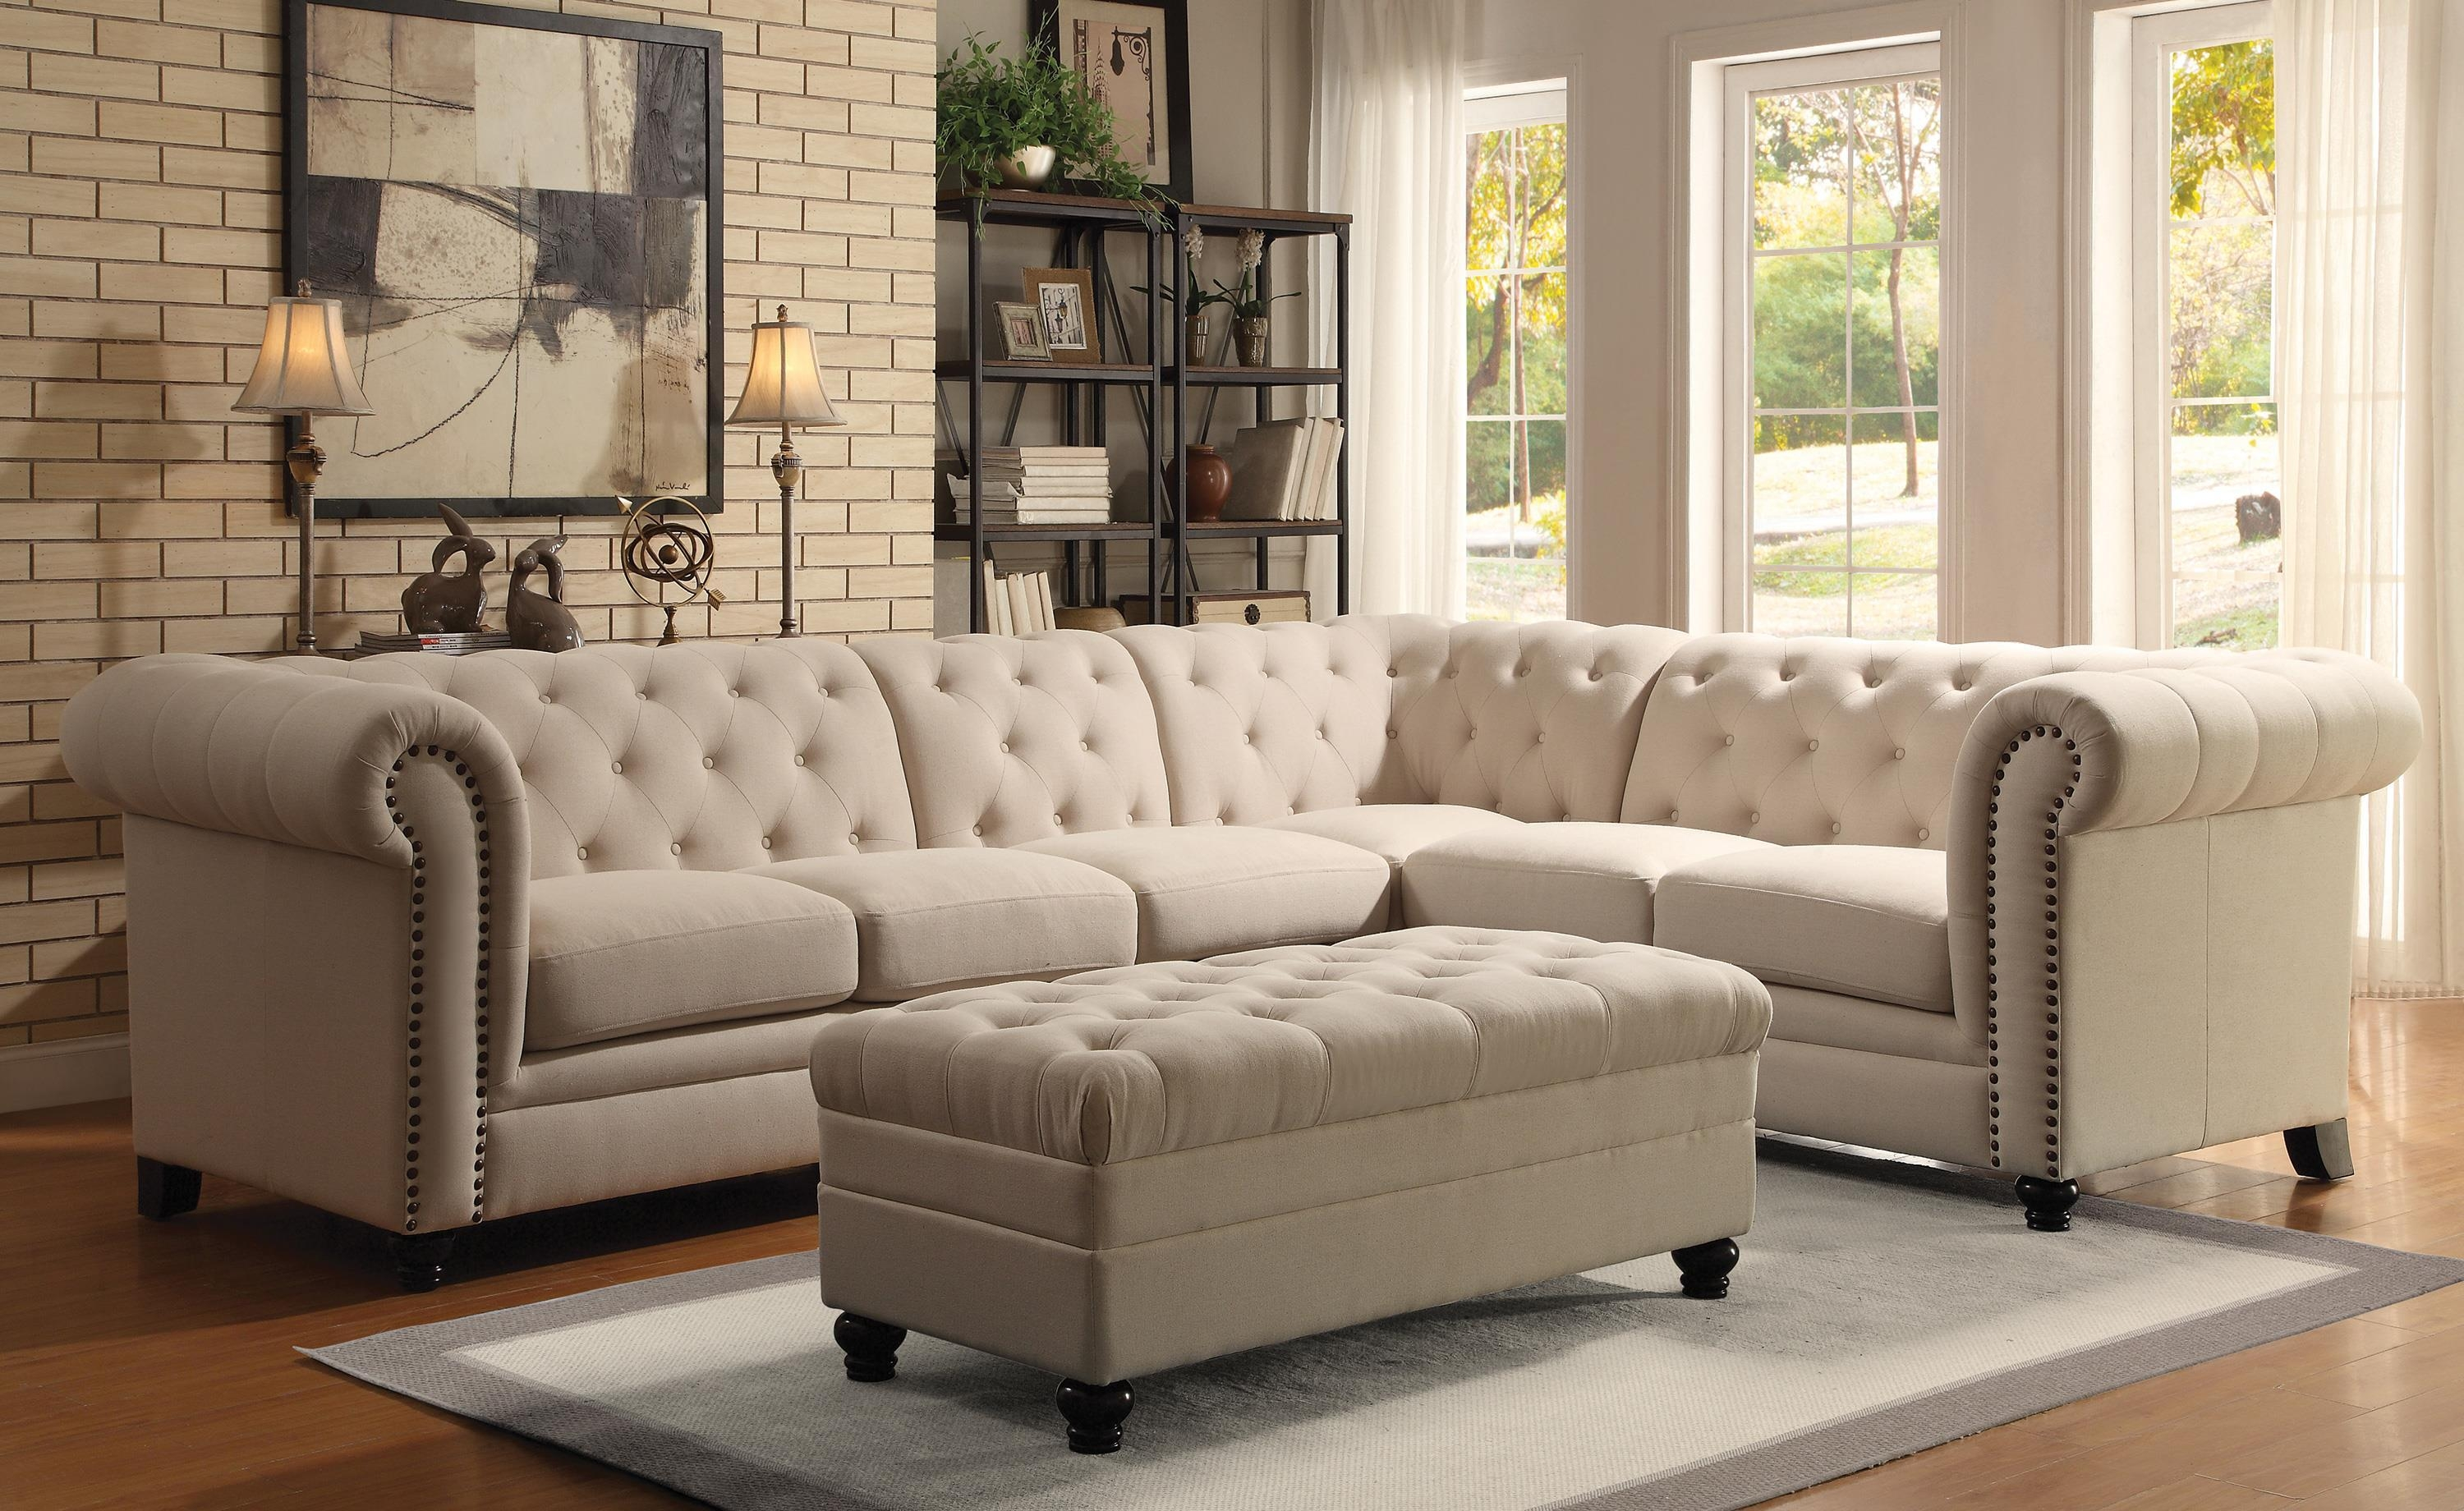 Featured Image of Tufted Sectional With Chaise